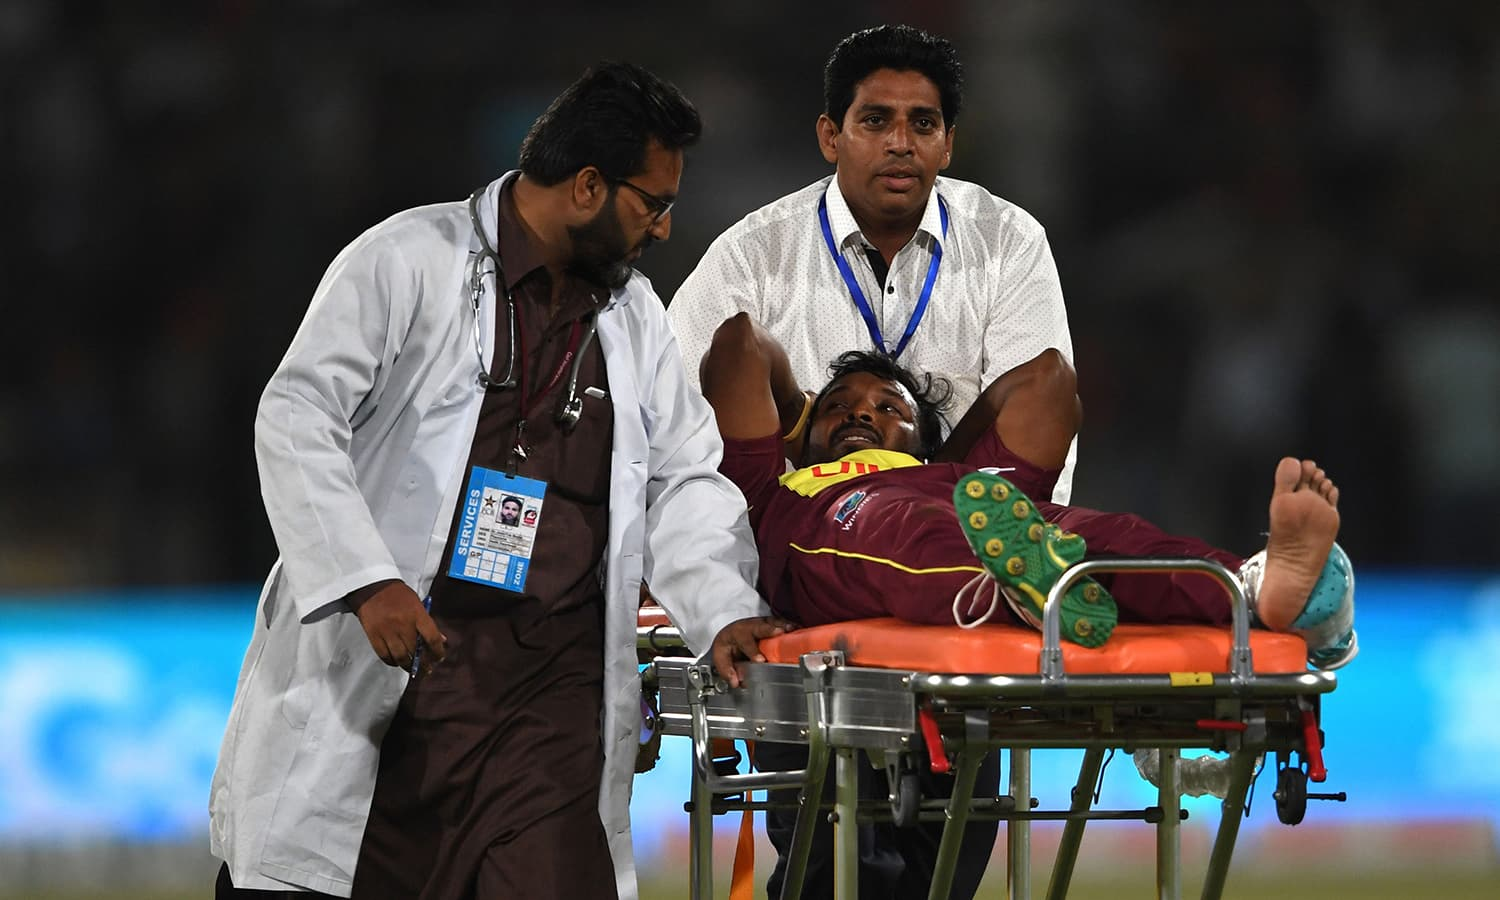 West Indies bowler Veerasammy Permaul gestures as he lies on a stretcher after injury during the first T20 cricket match between Pakistan and West Indies at The National Stadium in Karachi. ─AFP